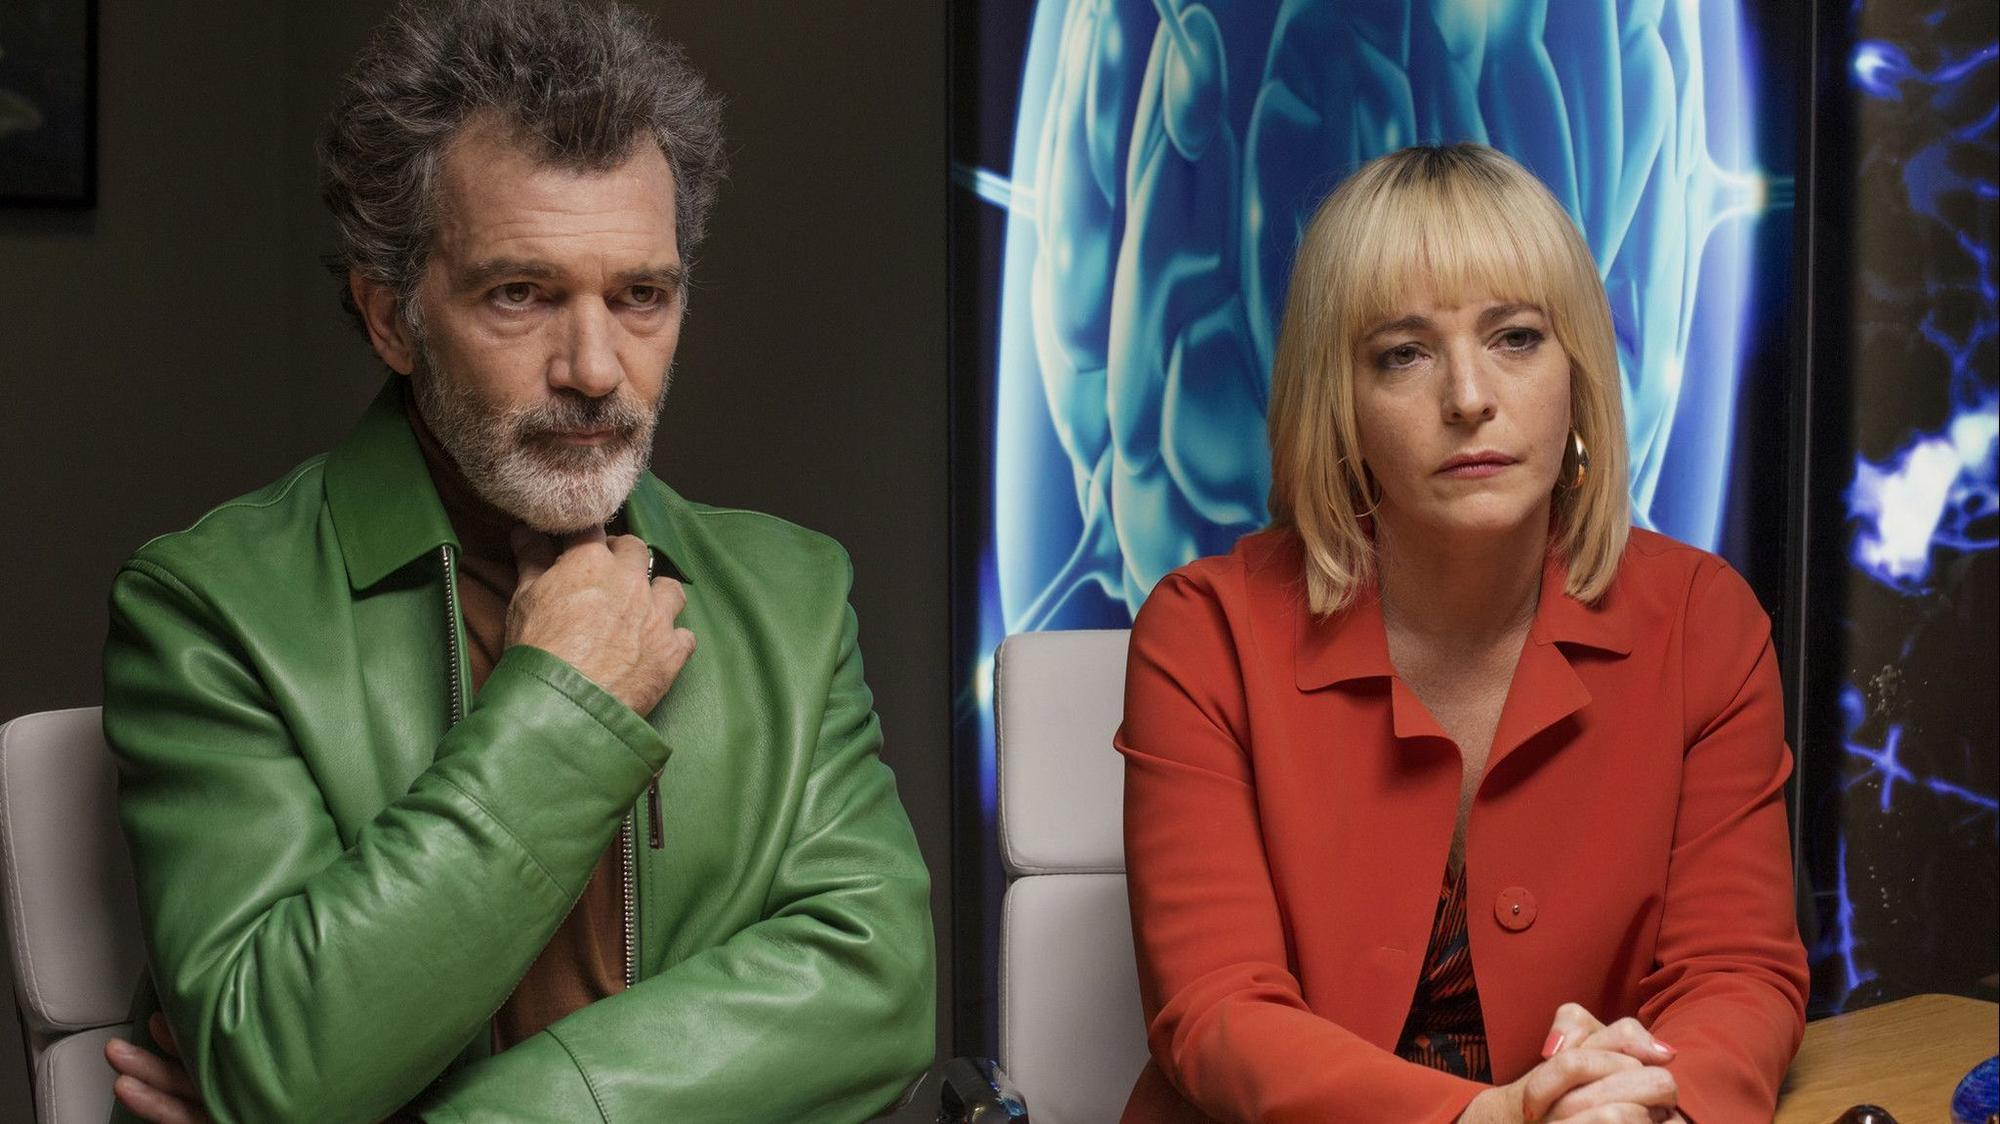 Pedro Almodóvar's 'Pain and Glory' hands the Cannes competition its first triumph